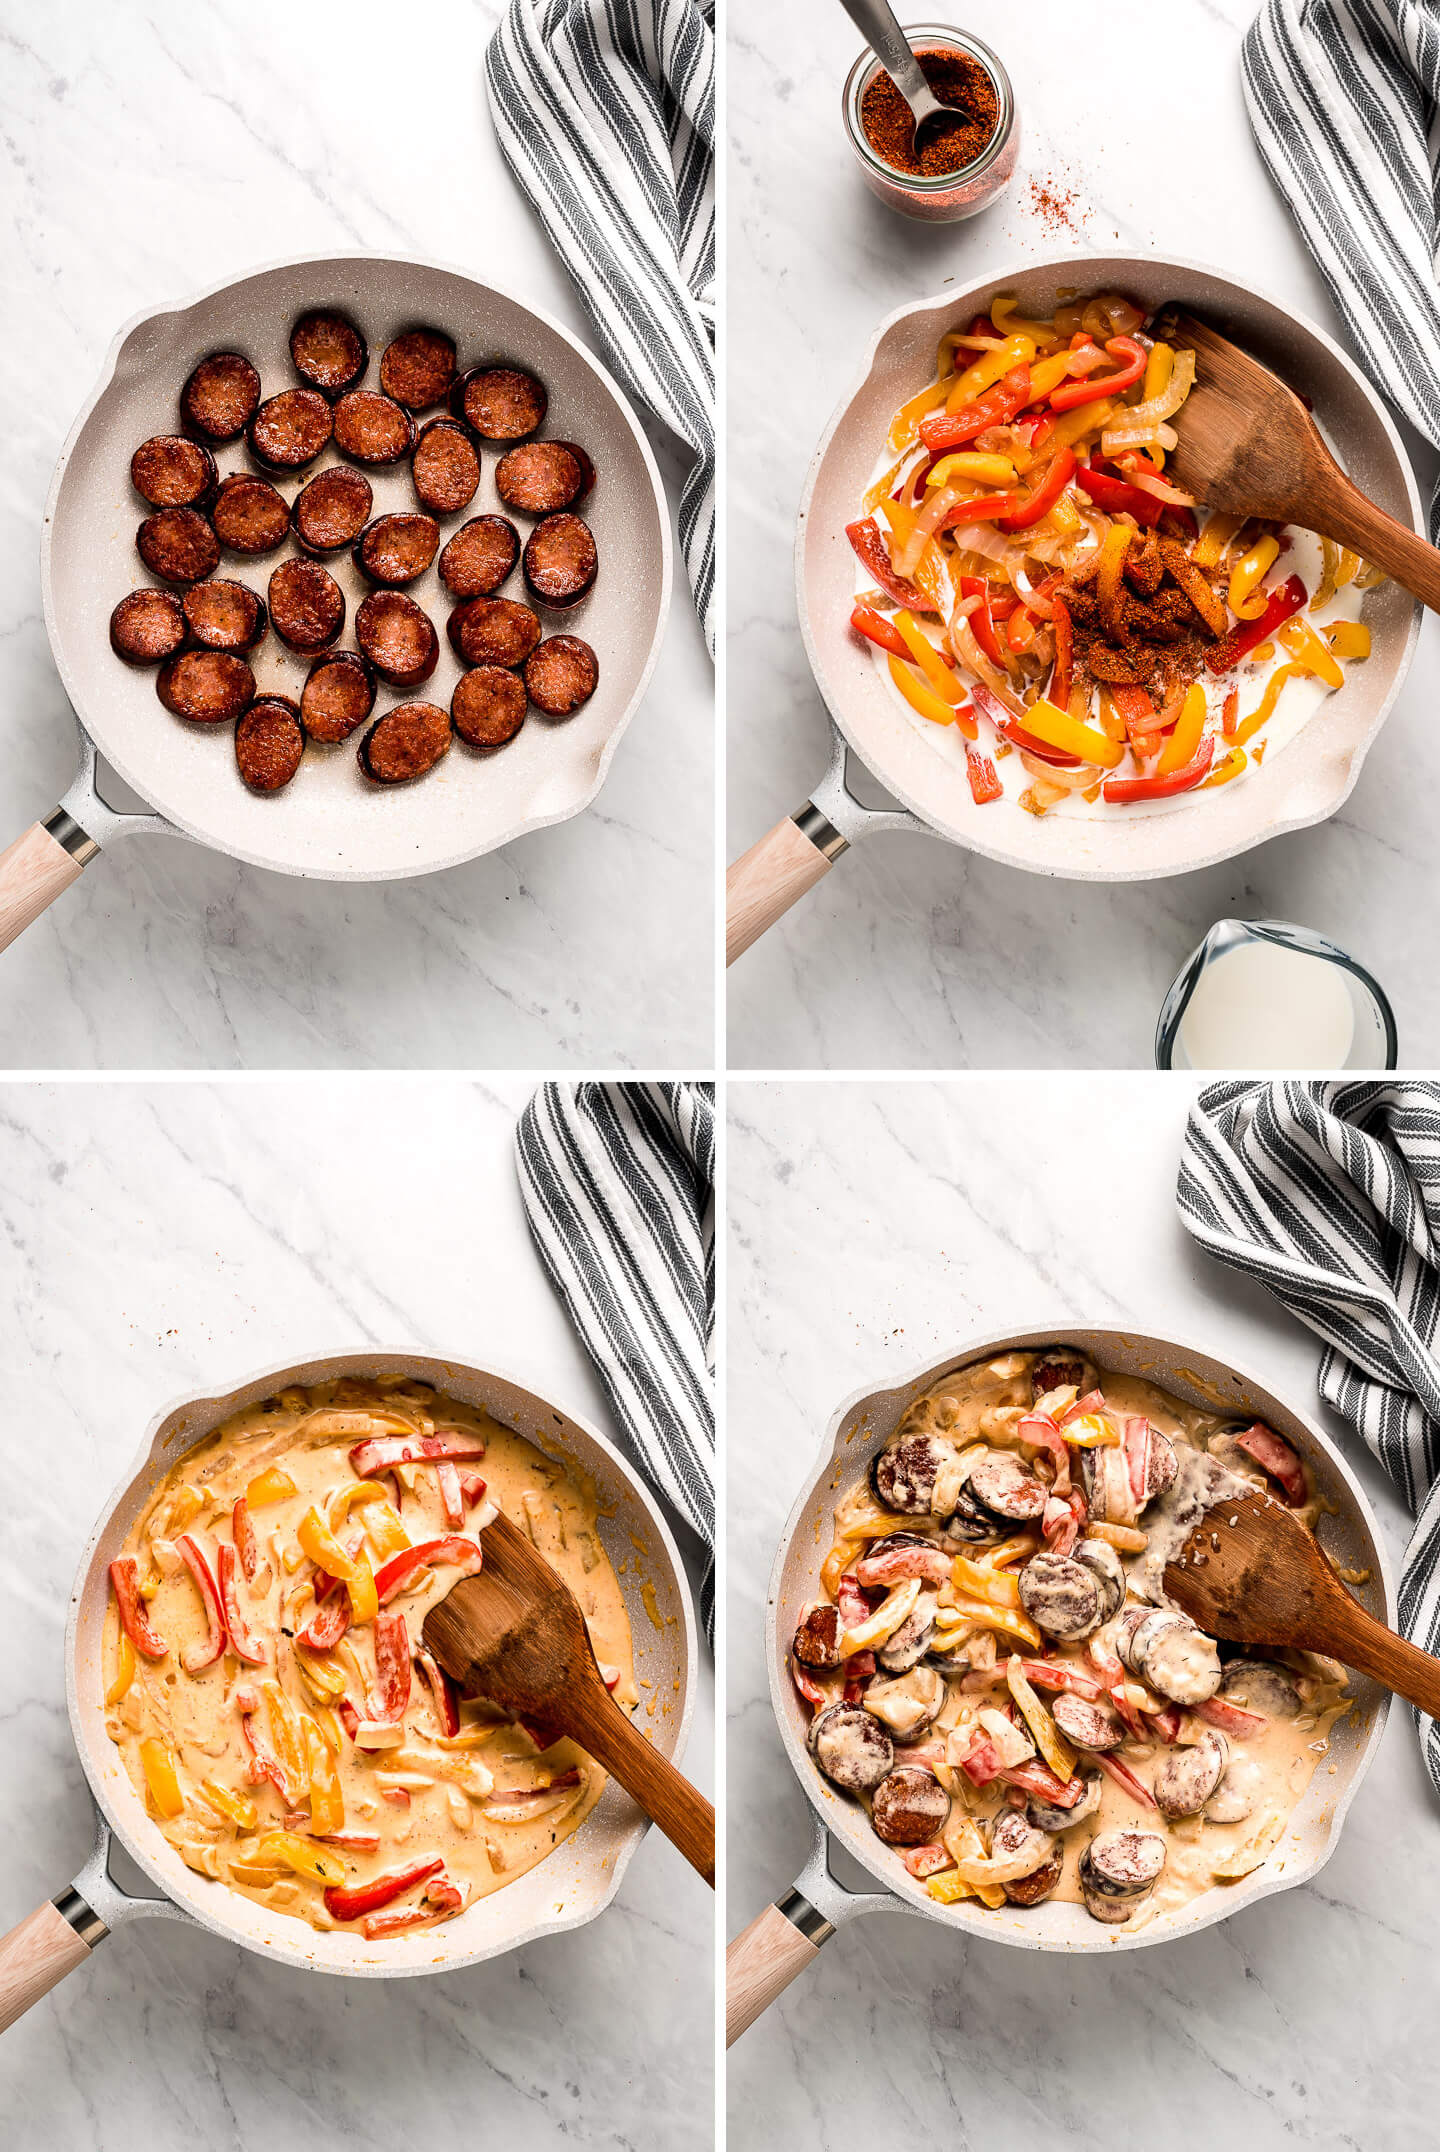 Process shots: Browning smoked sausage, cooking peppers and onions, creamy sauce, all mixed together.